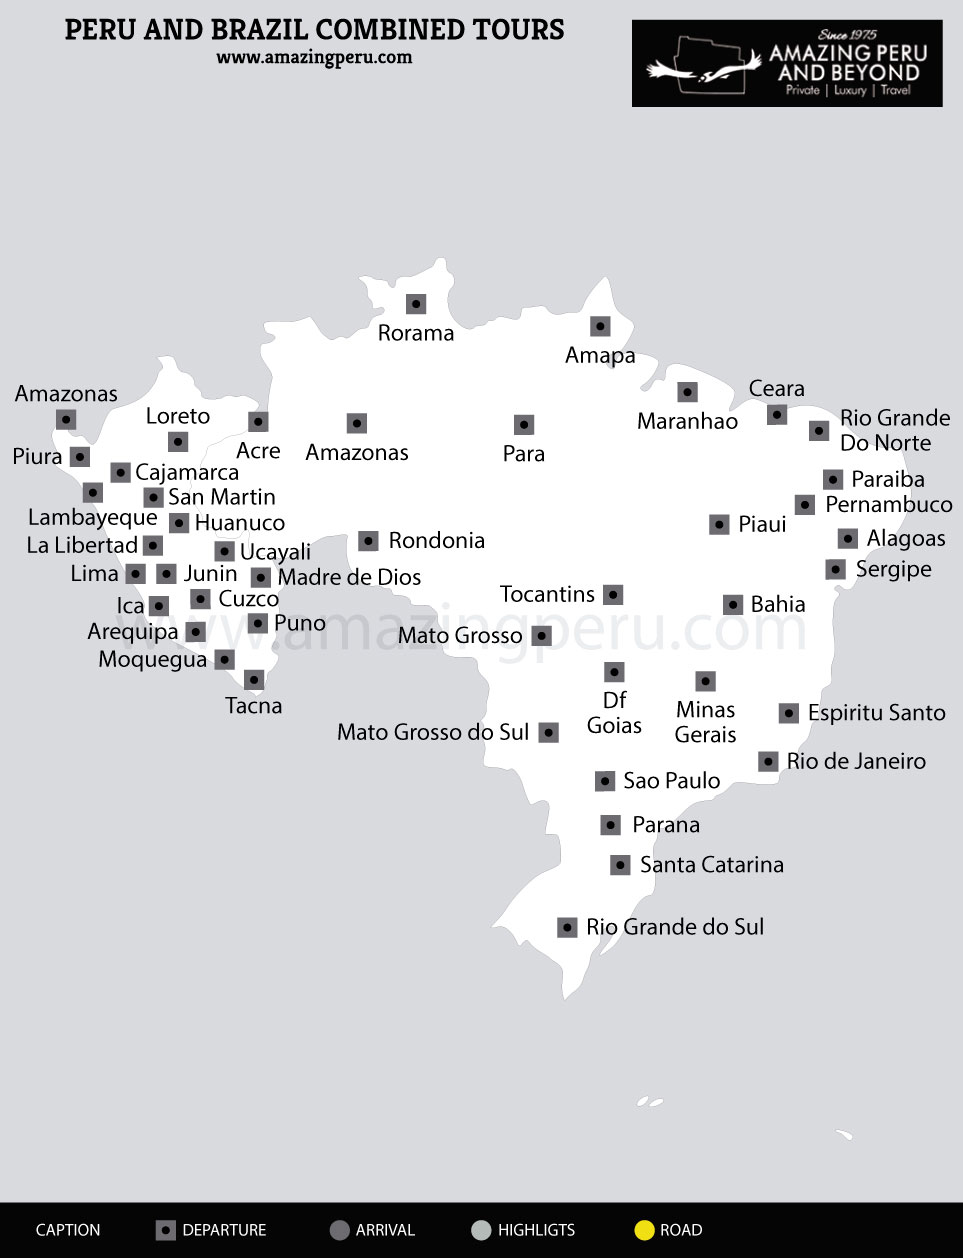 tour map peru brazil combined tours